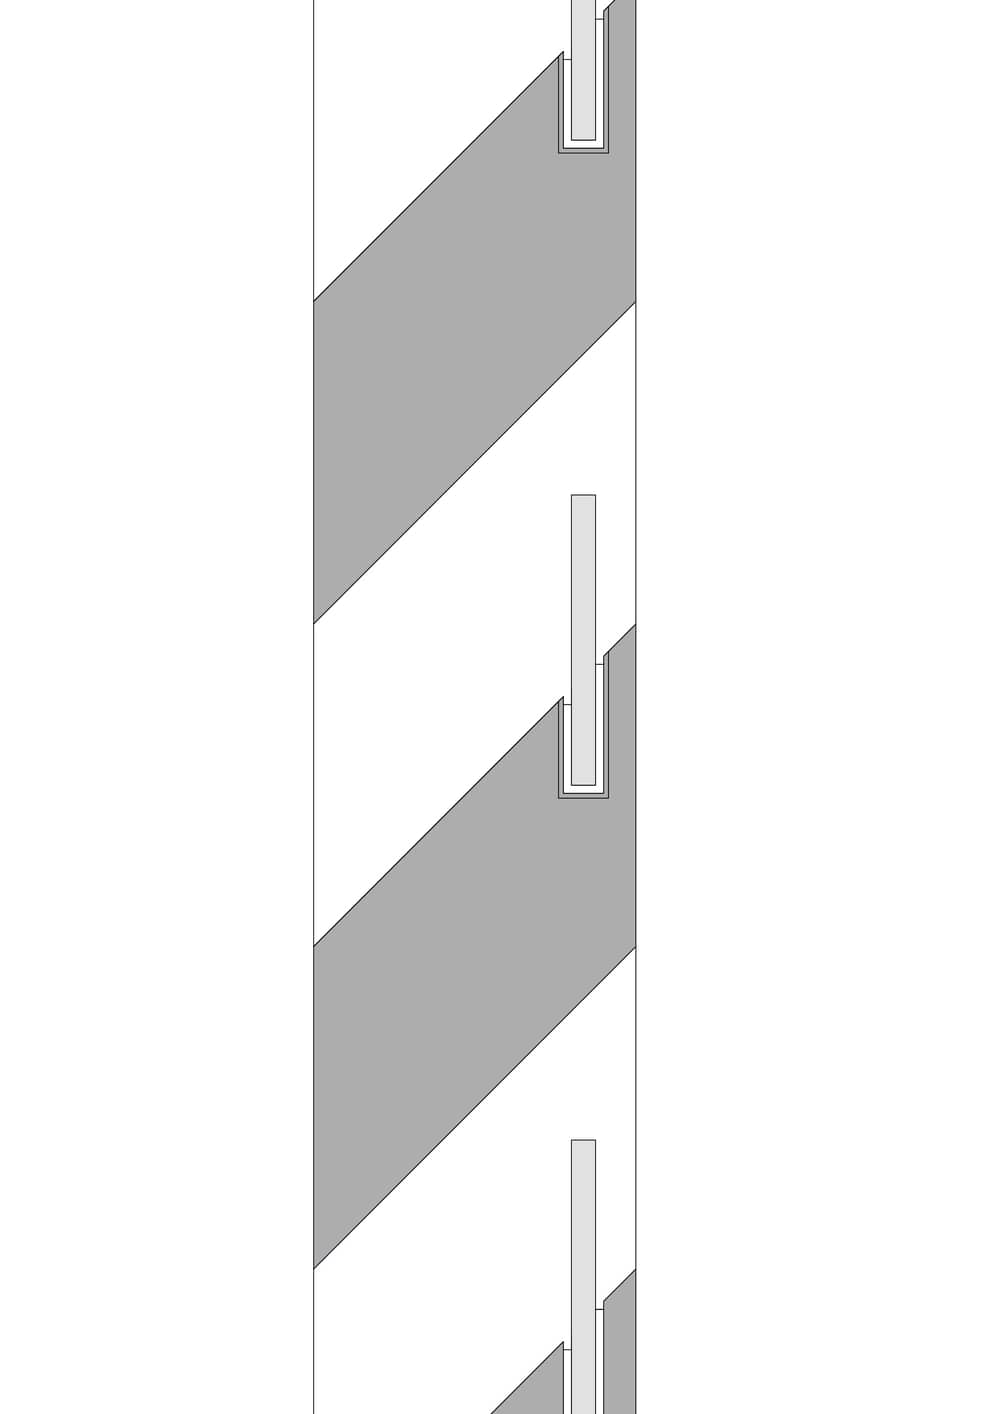 This is an illustration of the detail of window of the house.